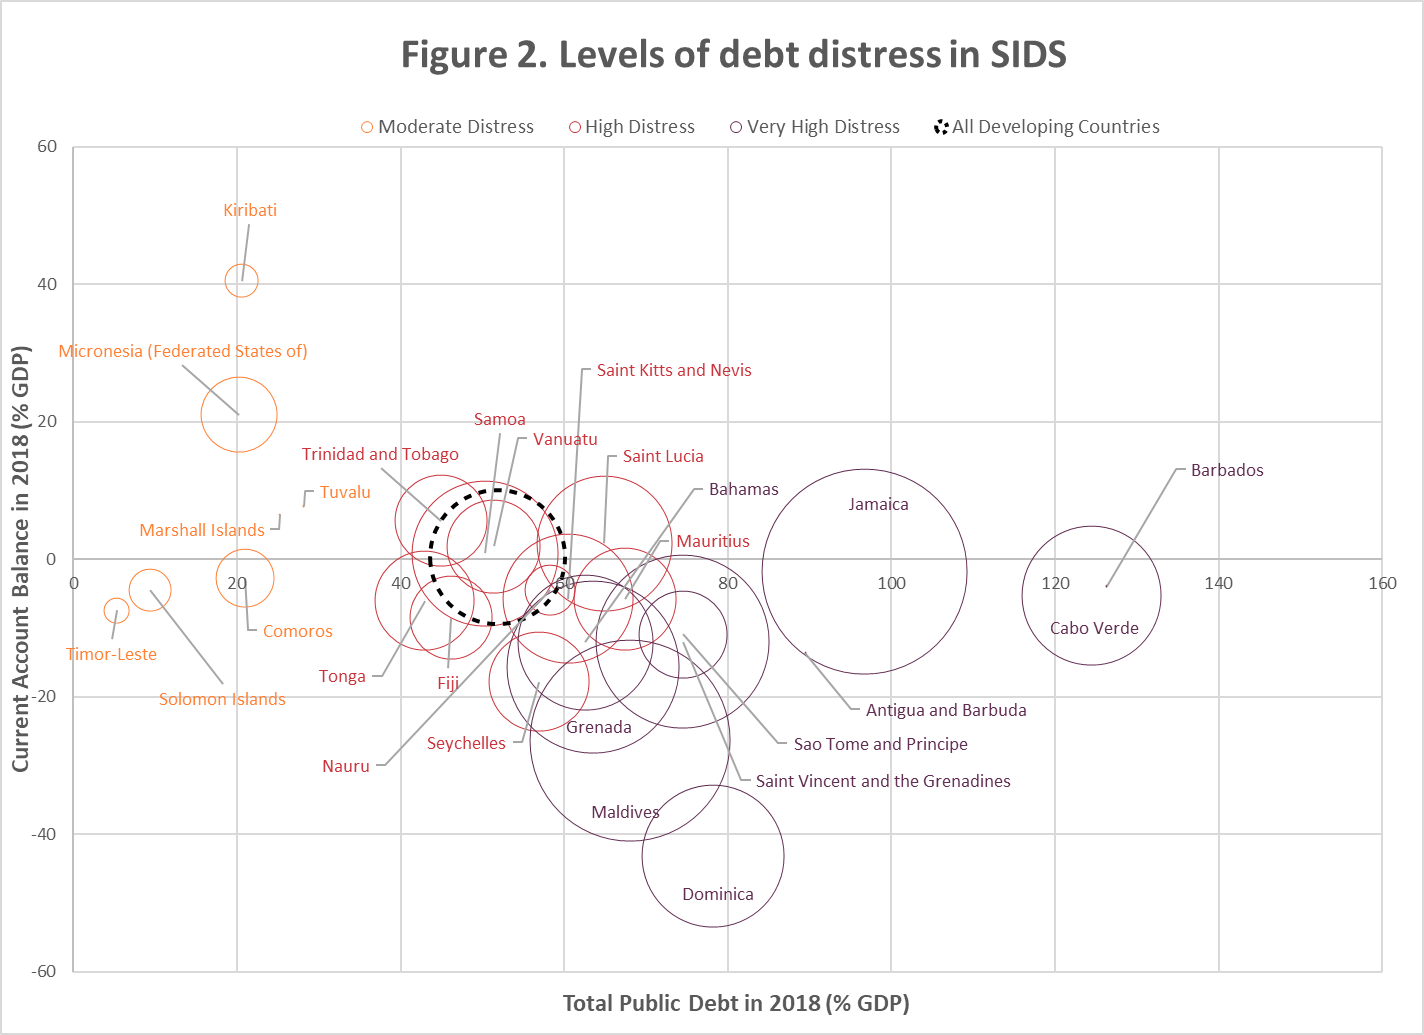 Levels of debt distress in SIDS